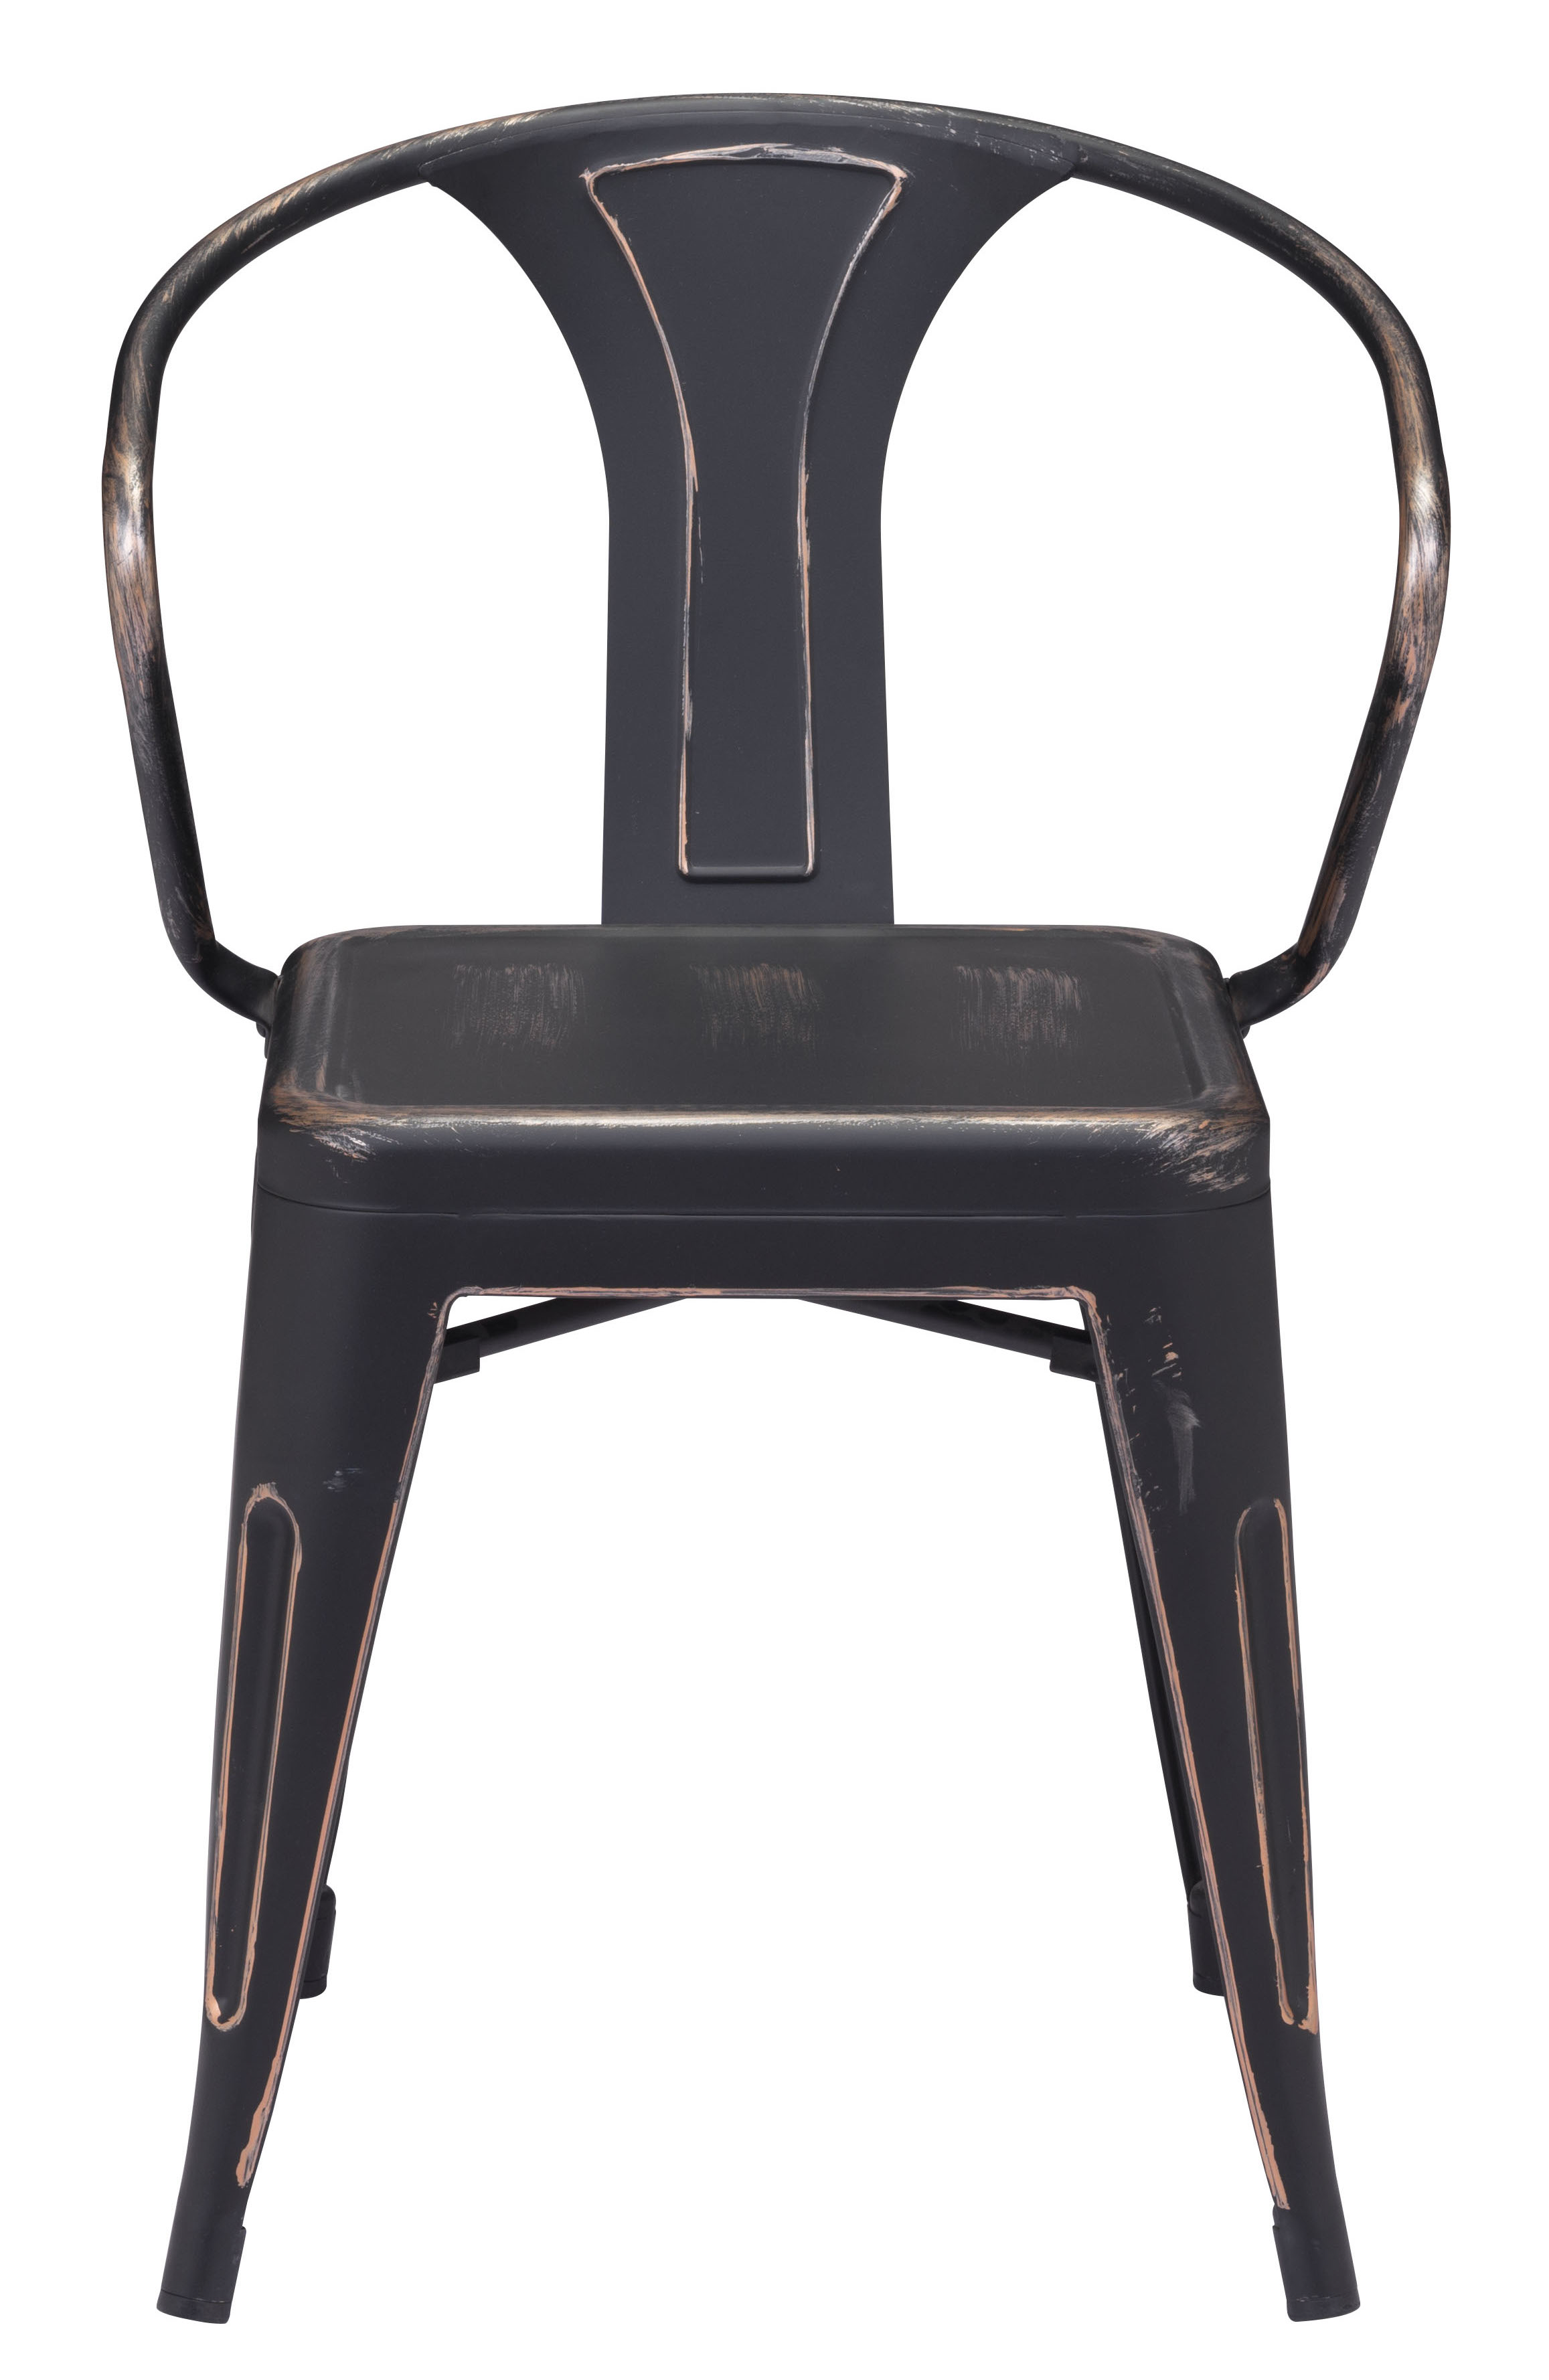 ZUO HELIX CHAIR ANTIQUE RUSTIC BLACK FINISH RUSTIC SIDE DINING